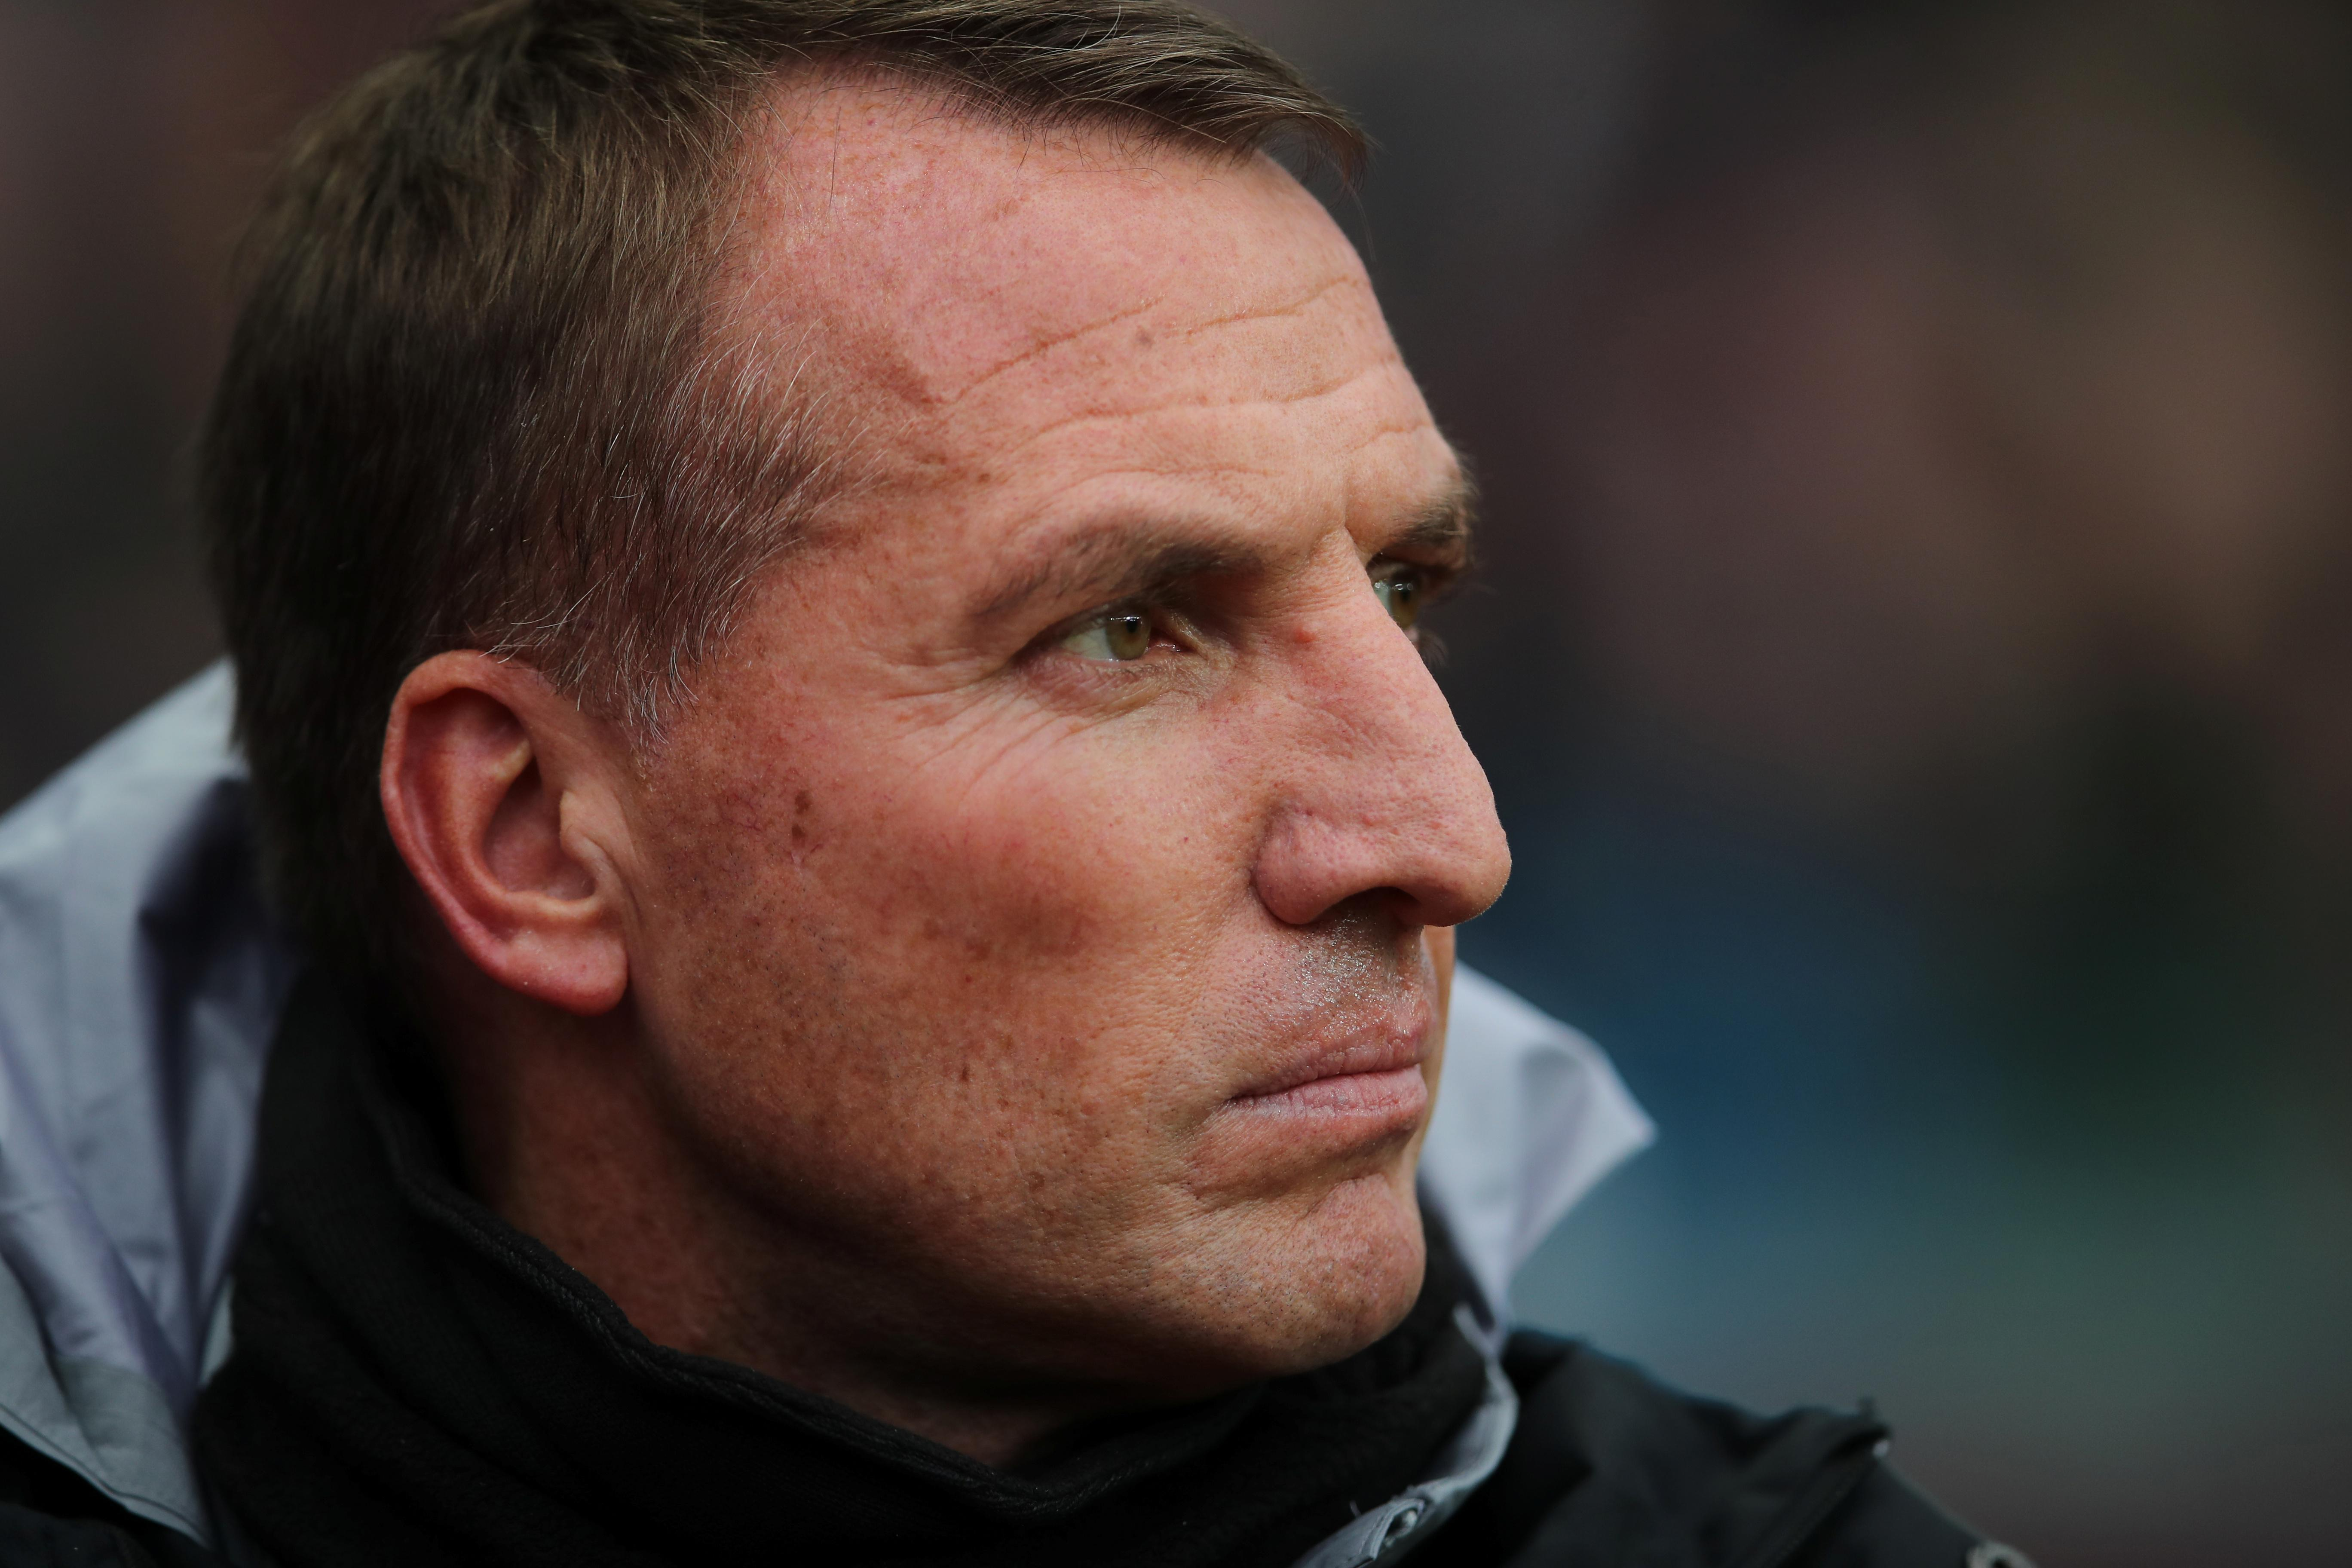 Only natural for Leicester to be overlooked, says Rodgers